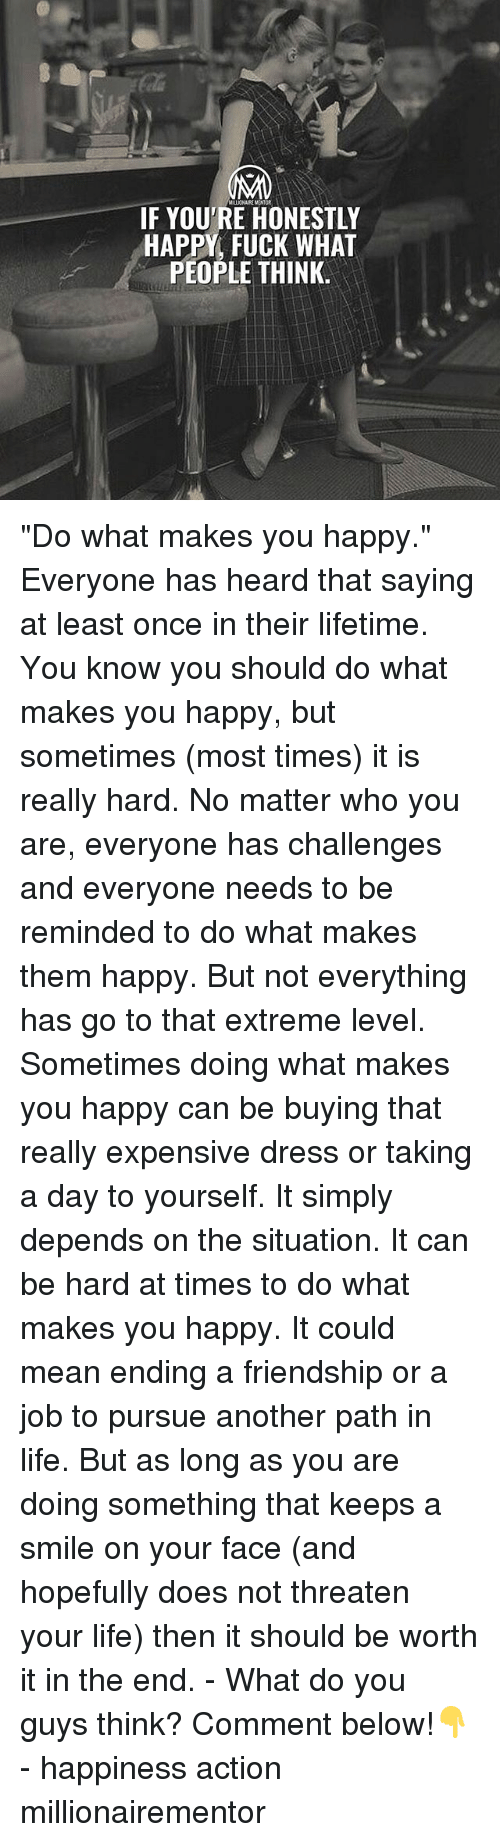 """do what makes you happy: IF YOU'RE HONESTLY  HAPPY, FUCK WHAT  PEOPLE THINK """"Do what makes you happy."""" Everyone has heard that saying at least once in their lifetime. You know you should do what makes you happy, but sometimes (most times) it is really hard. No matter who you are, everyone has challenges and everyone needs to be reminded to do what makes them happy. But not everything has go to that extreme level. Sometimes doing what makes you happy can be buying that really expensive dress or taking a day to yourself. It simply depends on the situation. It can be hard at times to do what makes you happy. It could mean ending a friendship or a job to pursue another path in life. But as long as you are doing something that keeps a smile on your face (and hopefully does not threaten your life) then it should be worth it in the end. - What do you guys think? Comment below!👇 - happiness action millionairementor"""